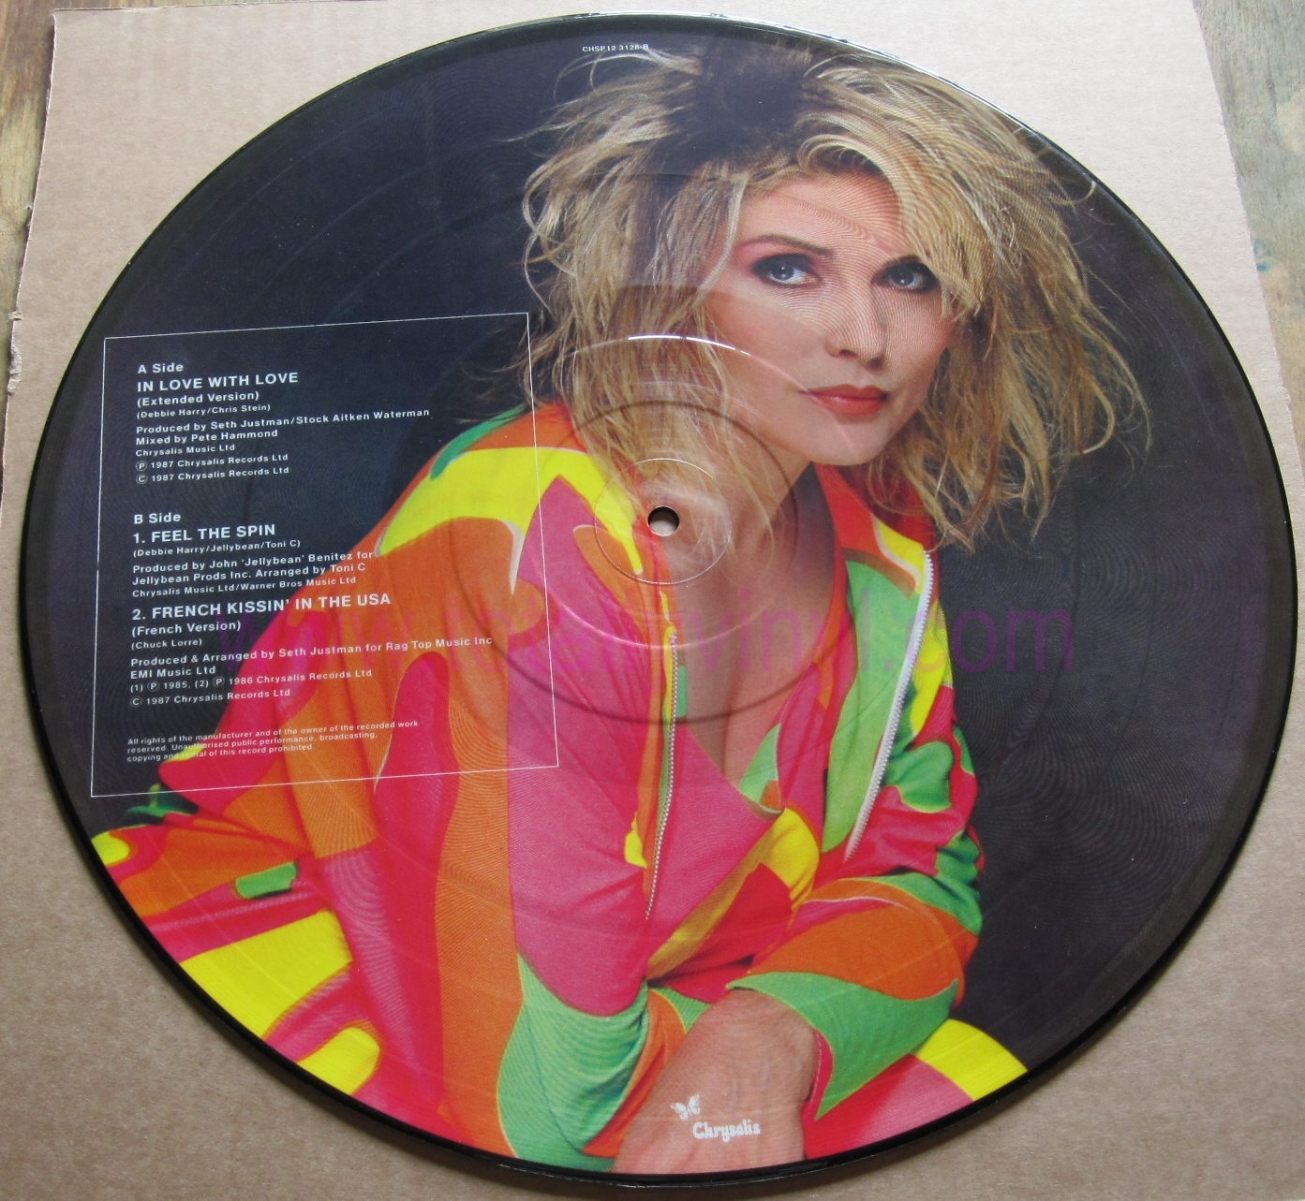 DEBBIE_HARRY_FRENCH_KISSIN_IN_THE_USA_french_version_PICTURE_DISC_12